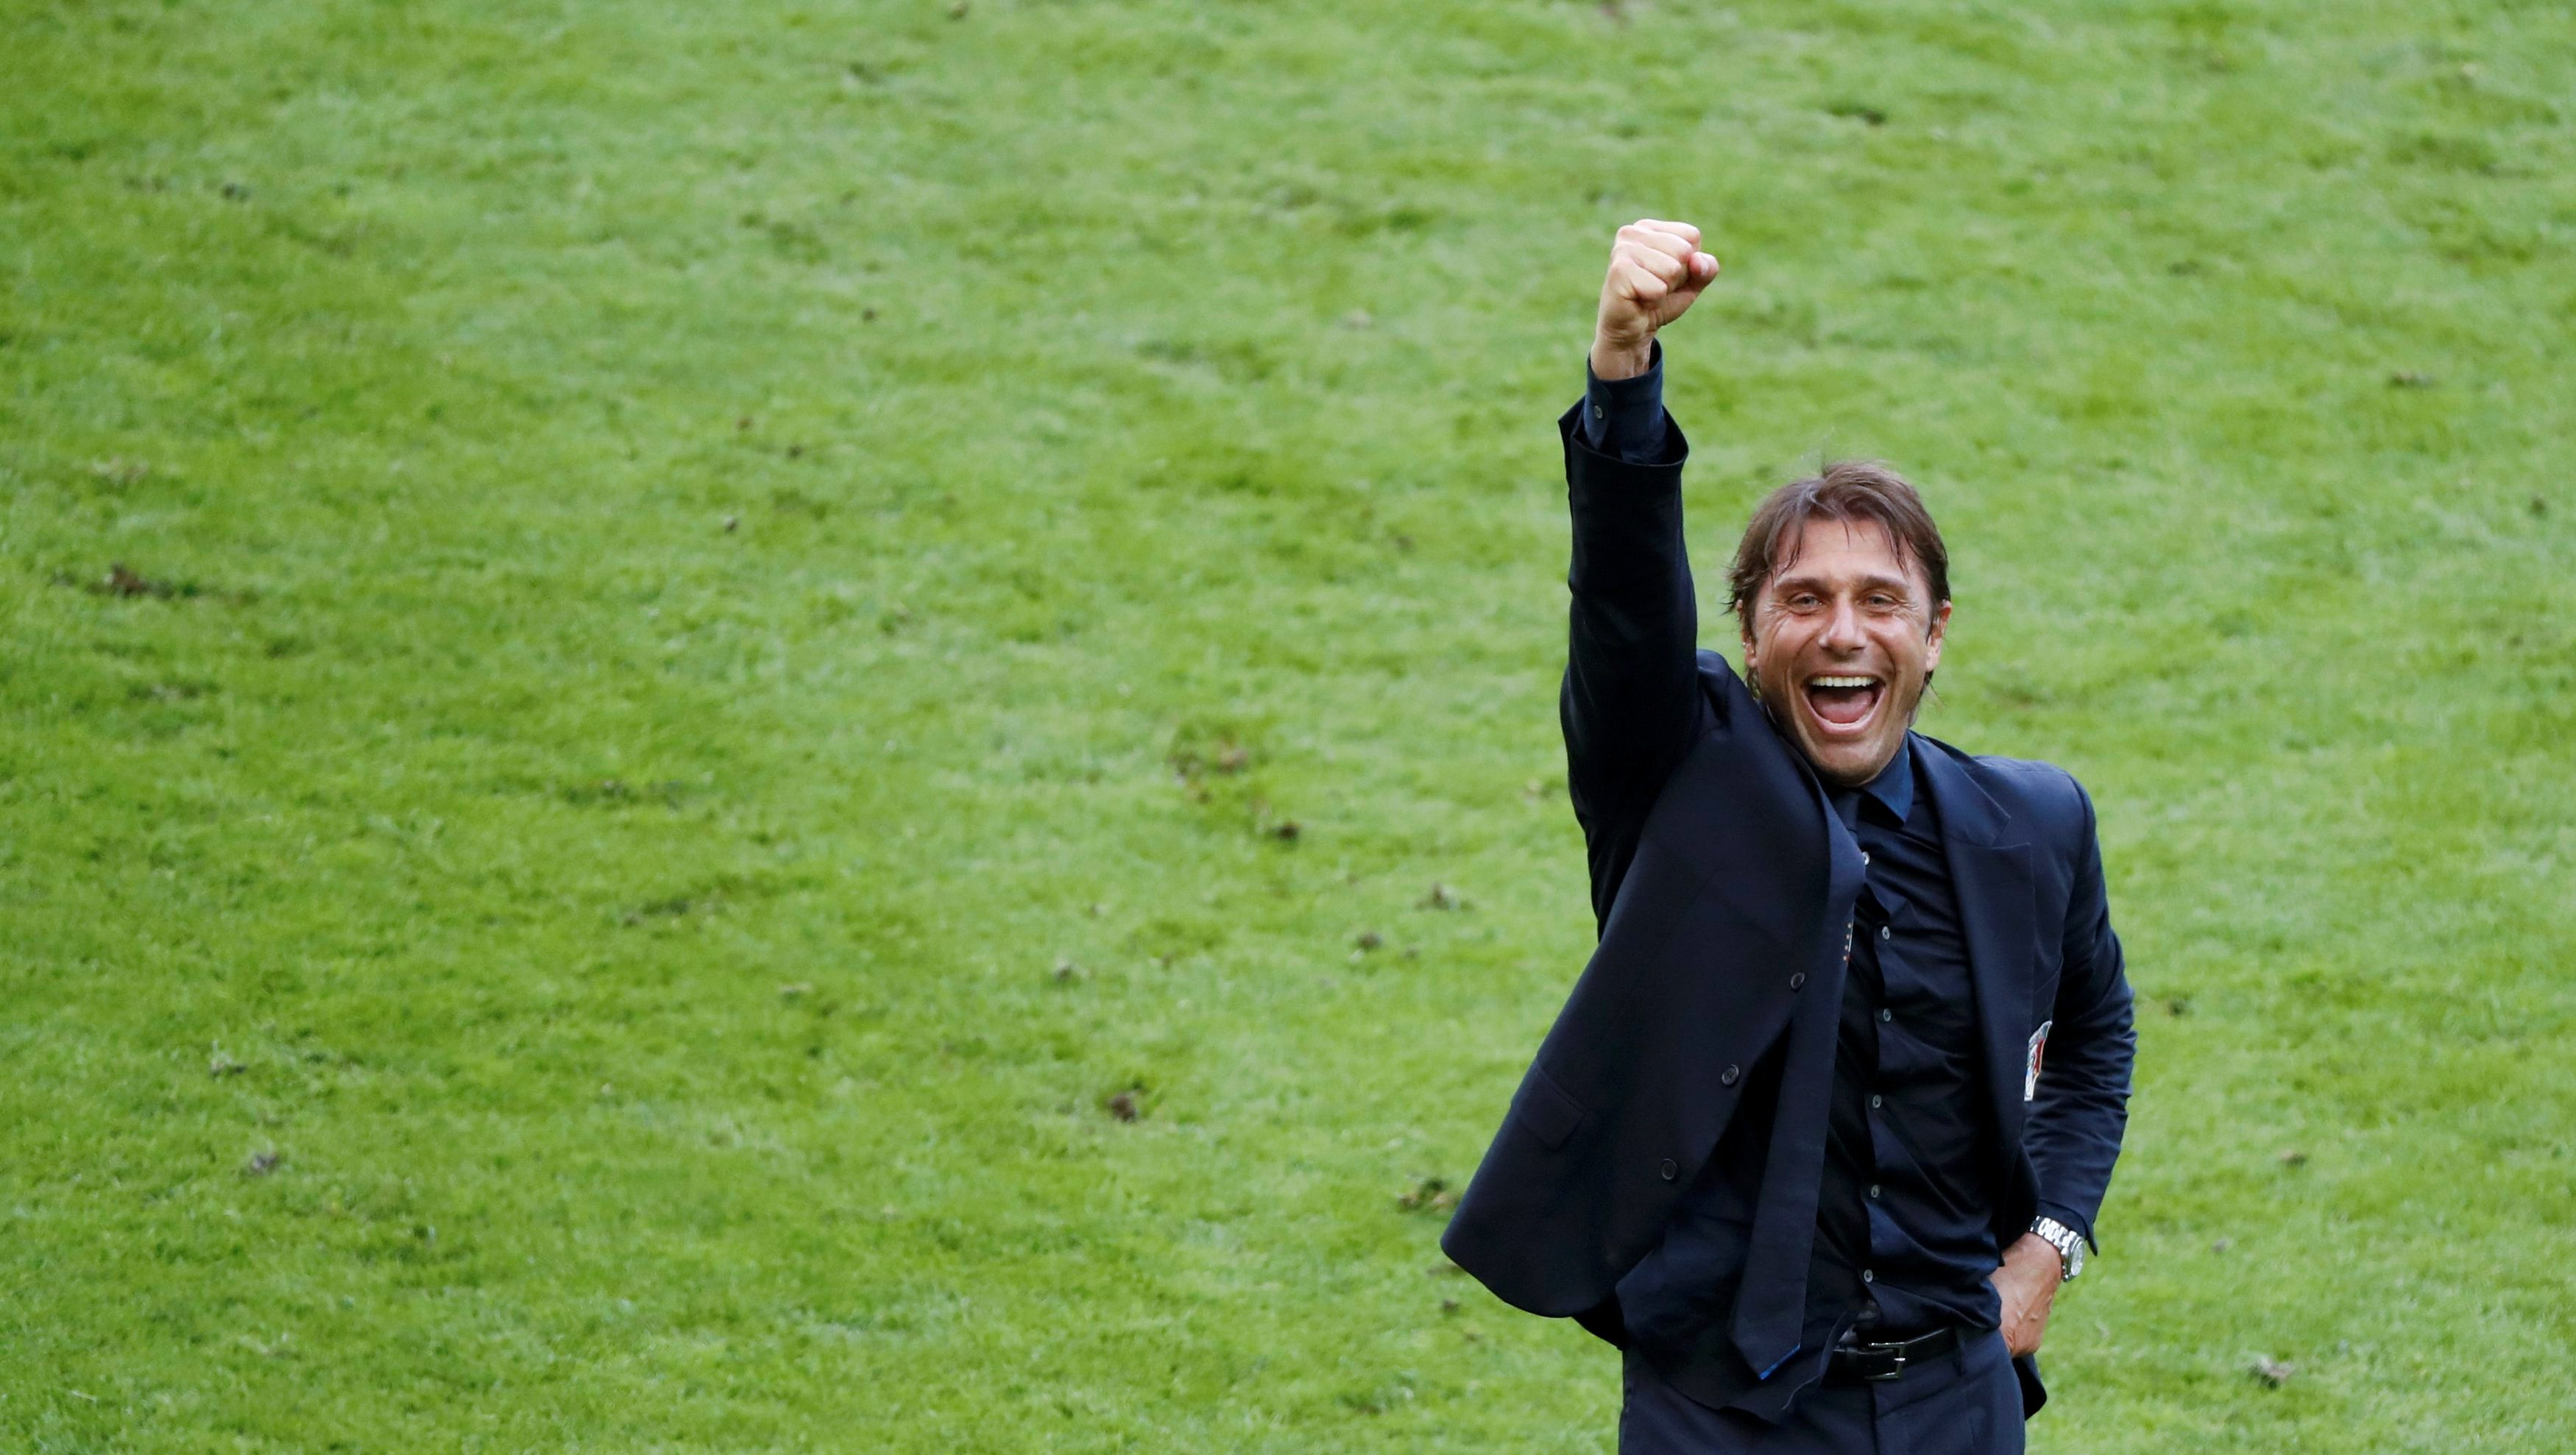 Italy's coach Antonio Conte celebrates after the match with France.